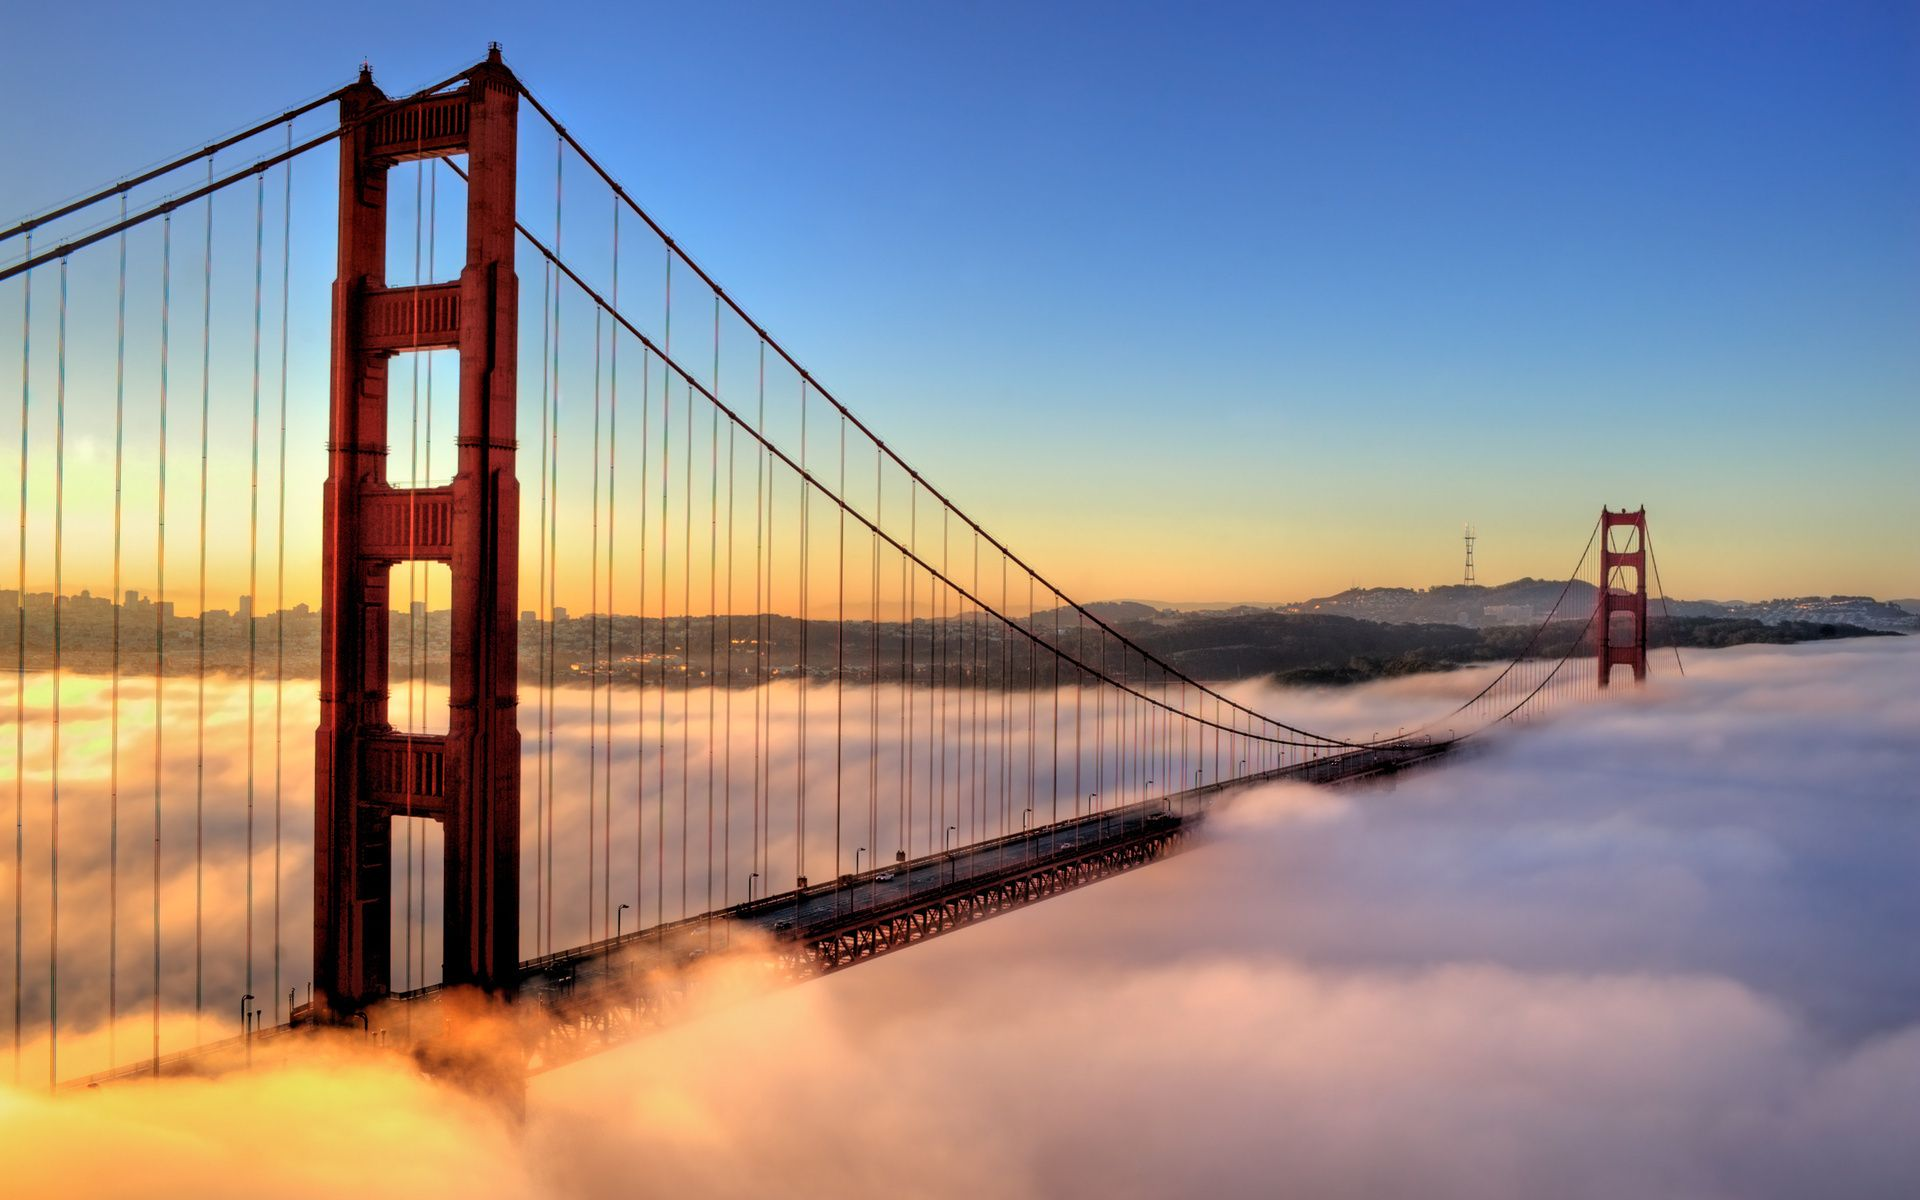 San Francisco Hd Wallpapers For Desktop Download